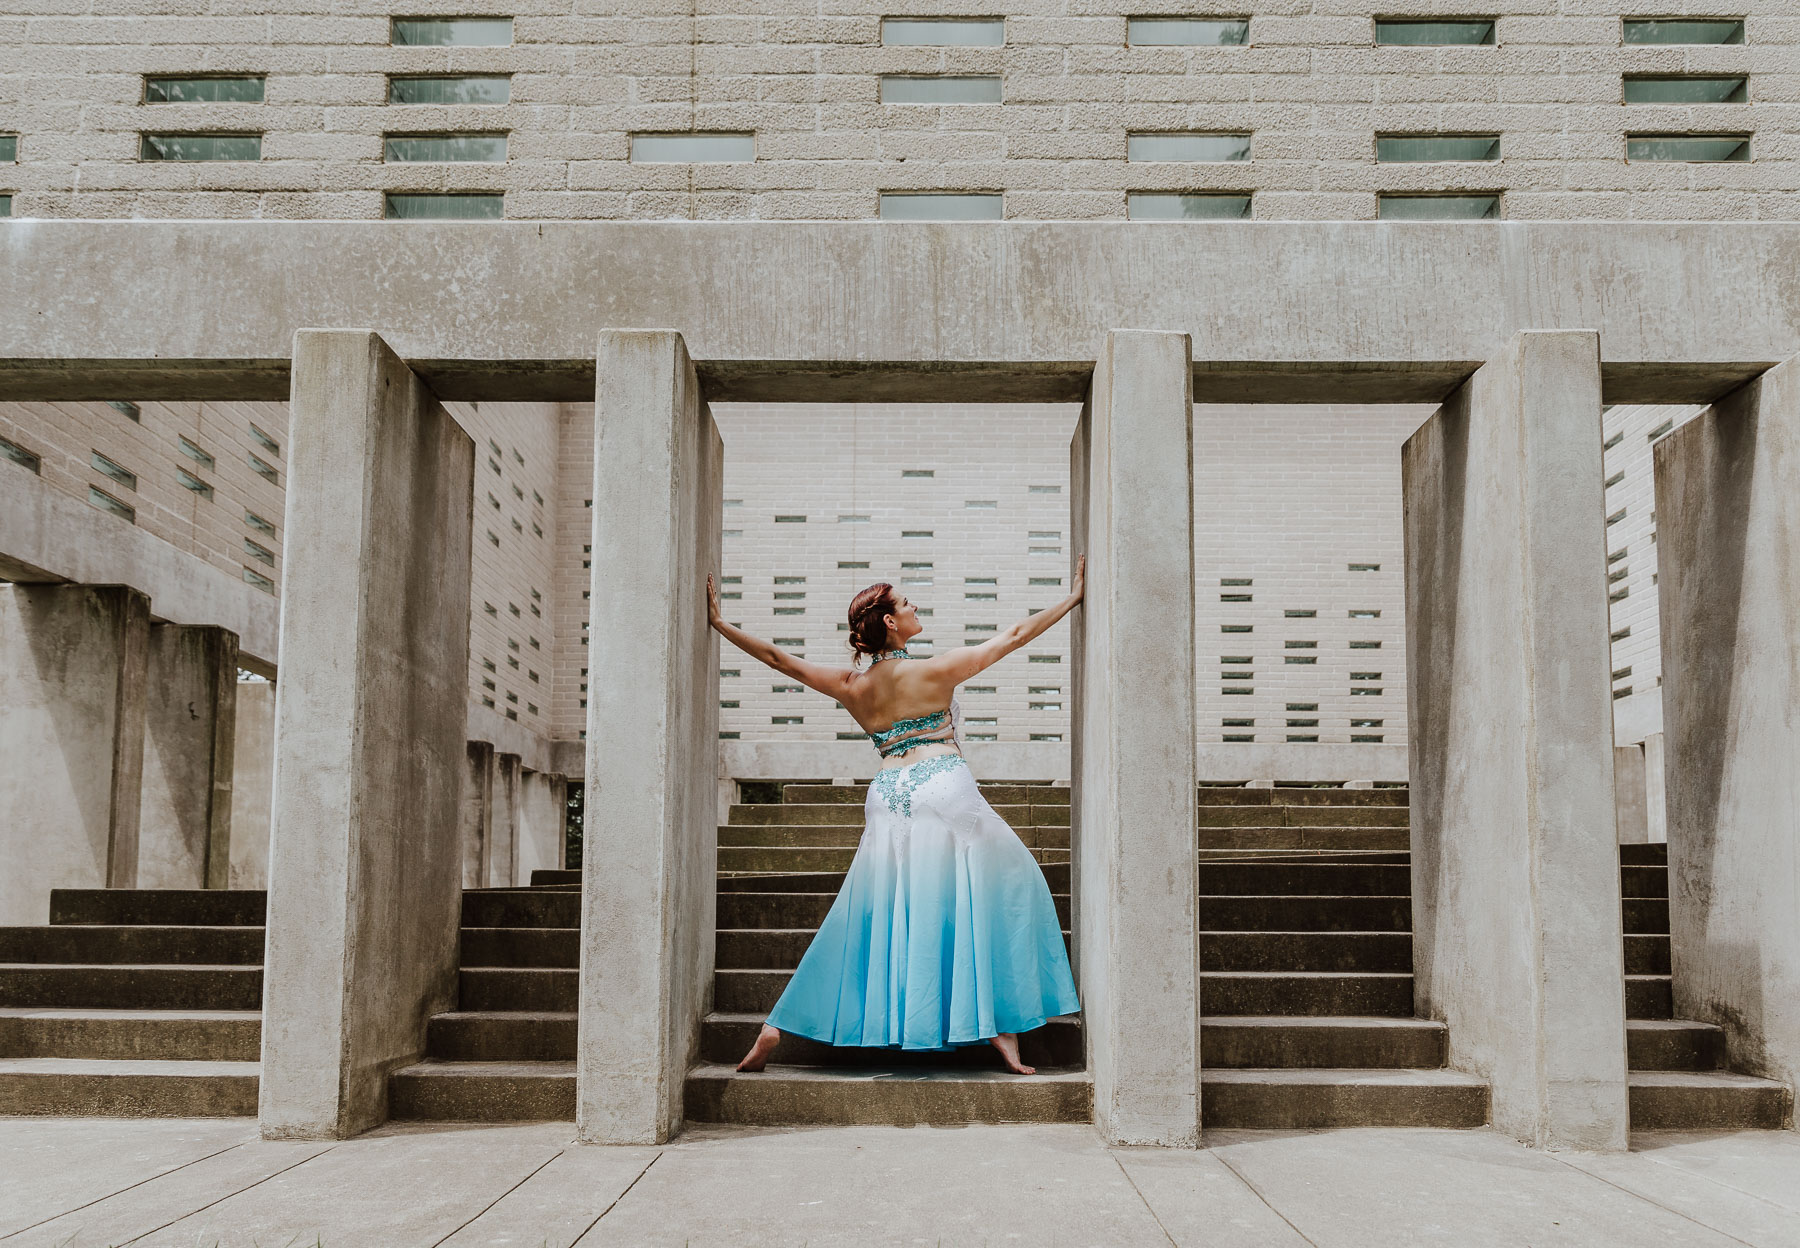 """DANCE - """"Don't breathe to survive; dance and feel alive.""""― Shah Asad RizviI'm a big fan of all things dance— and I love photographing dancers! Poses, tableaus, competitions, the makeup and costumes, from ballet to country ballroom dancing!"""